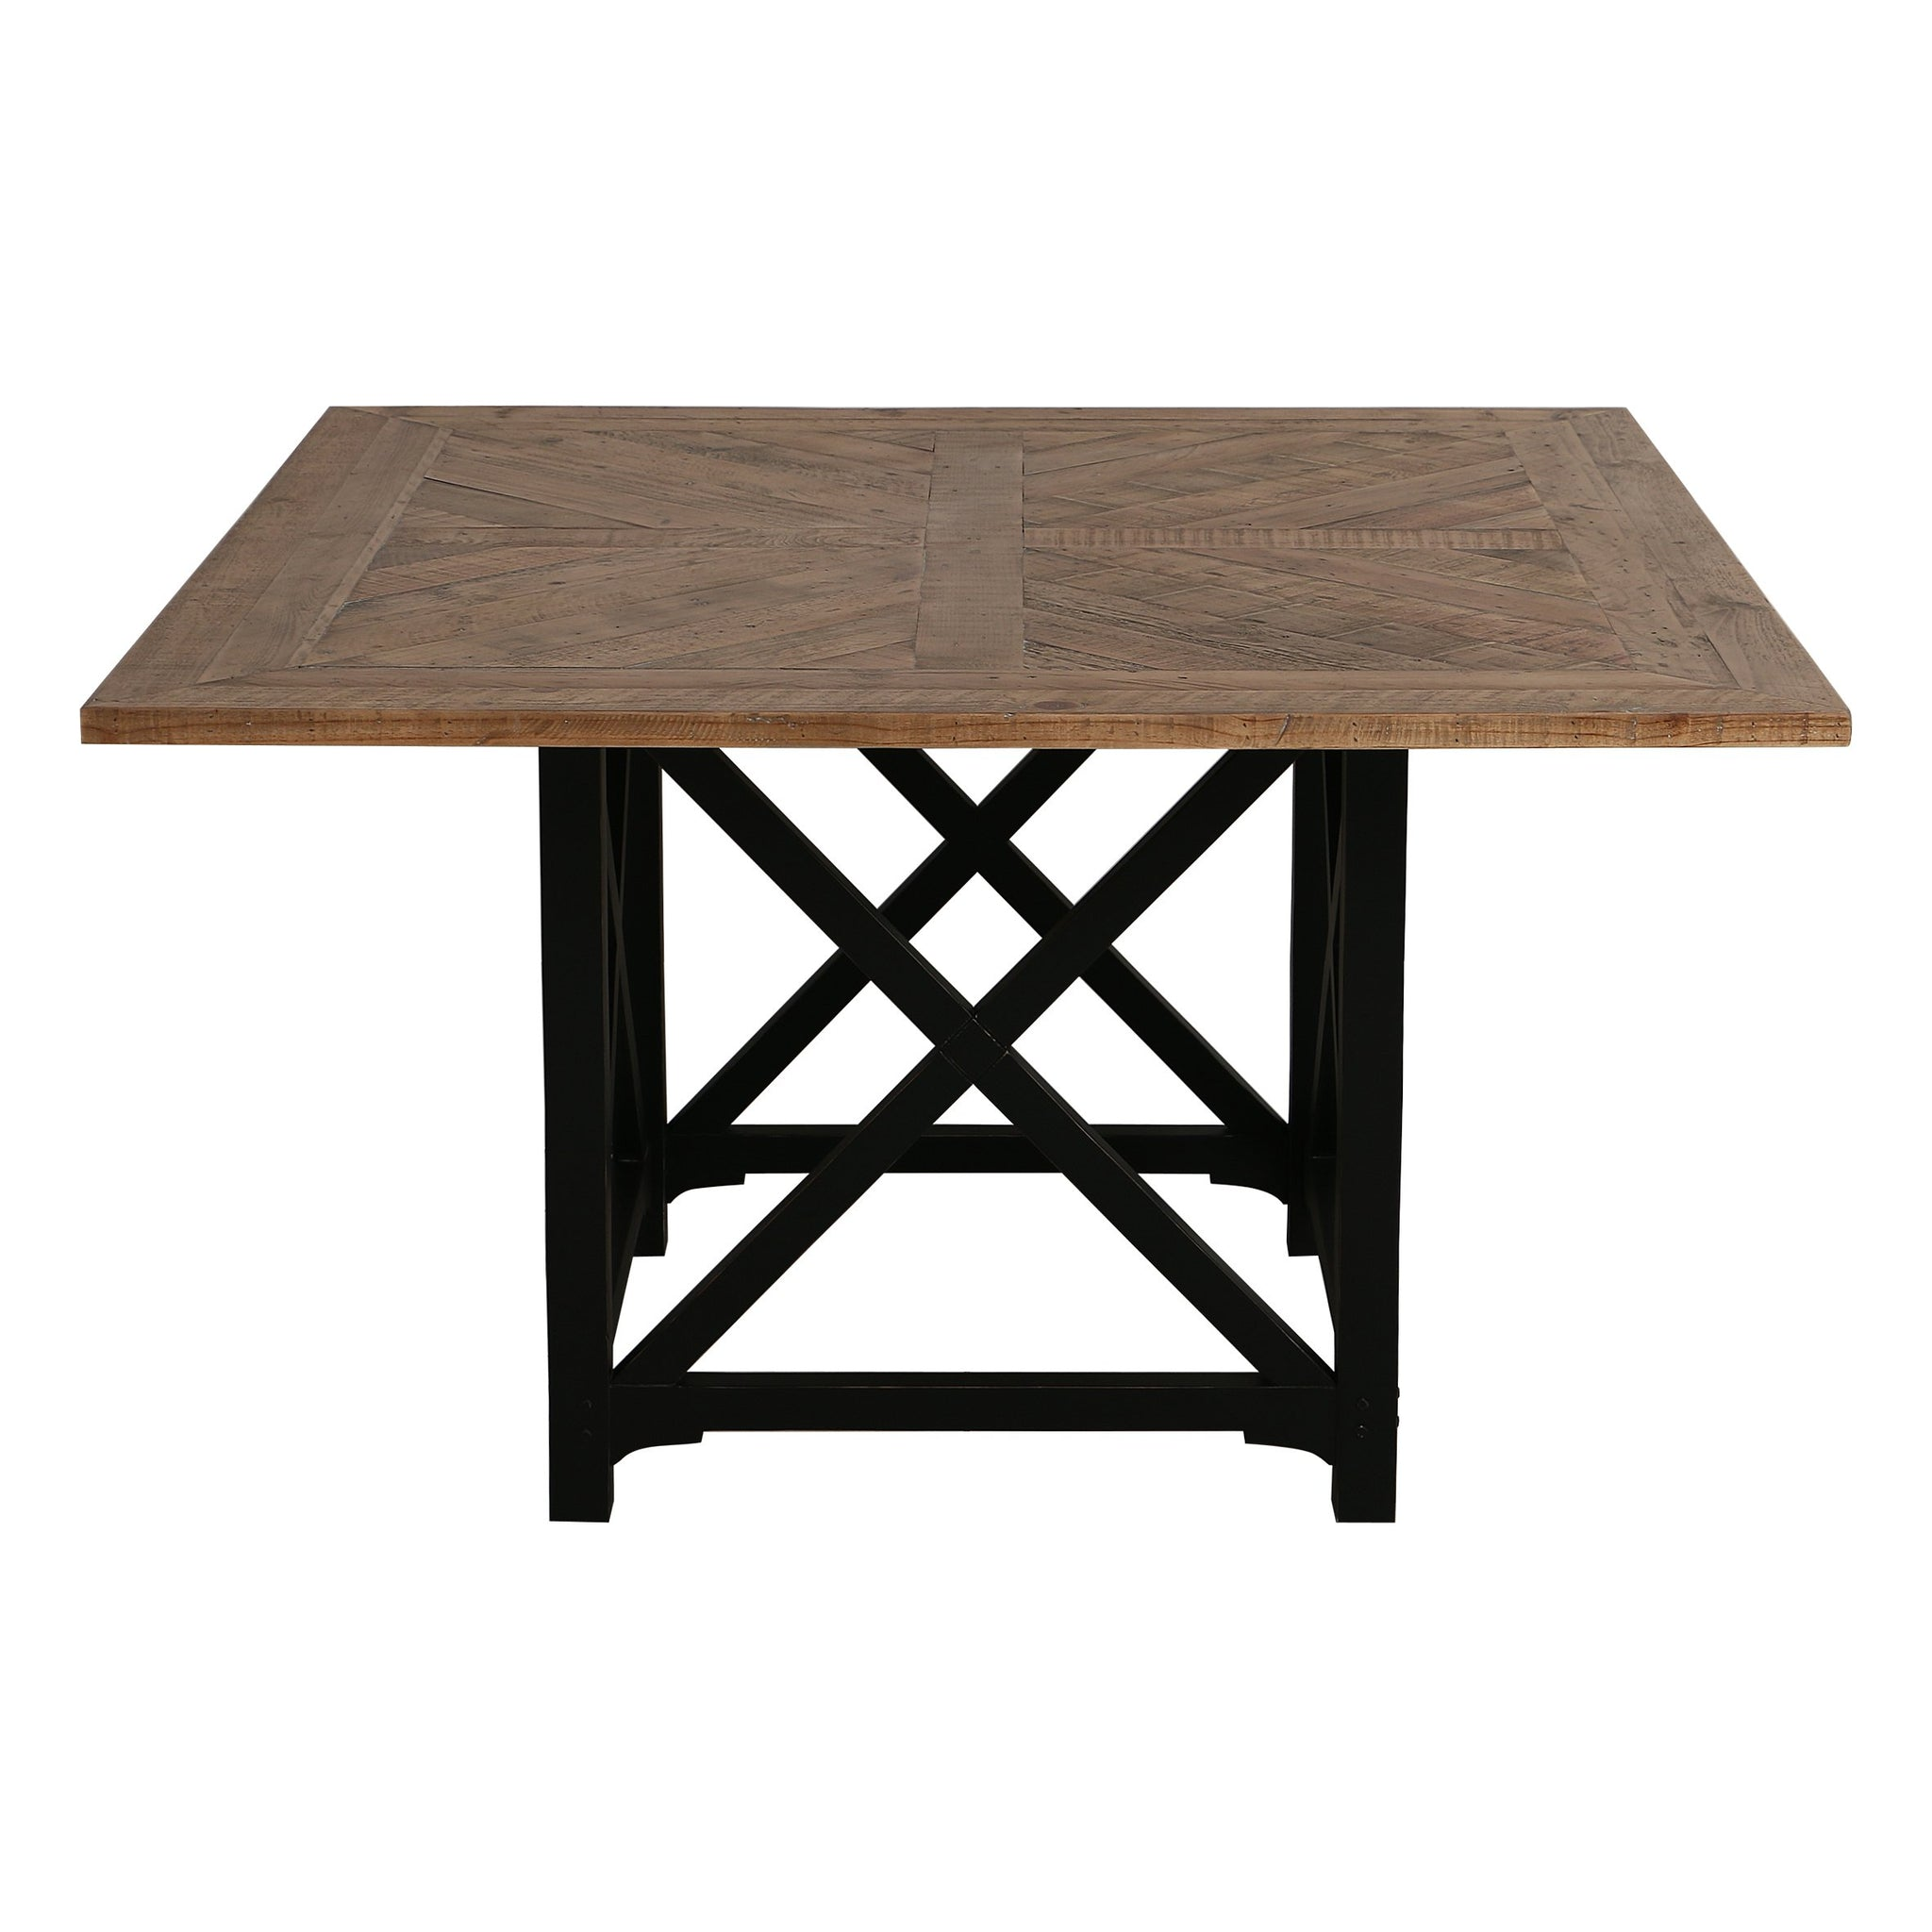 Riviera Square Dining Table Black Natural Wood The French Villa